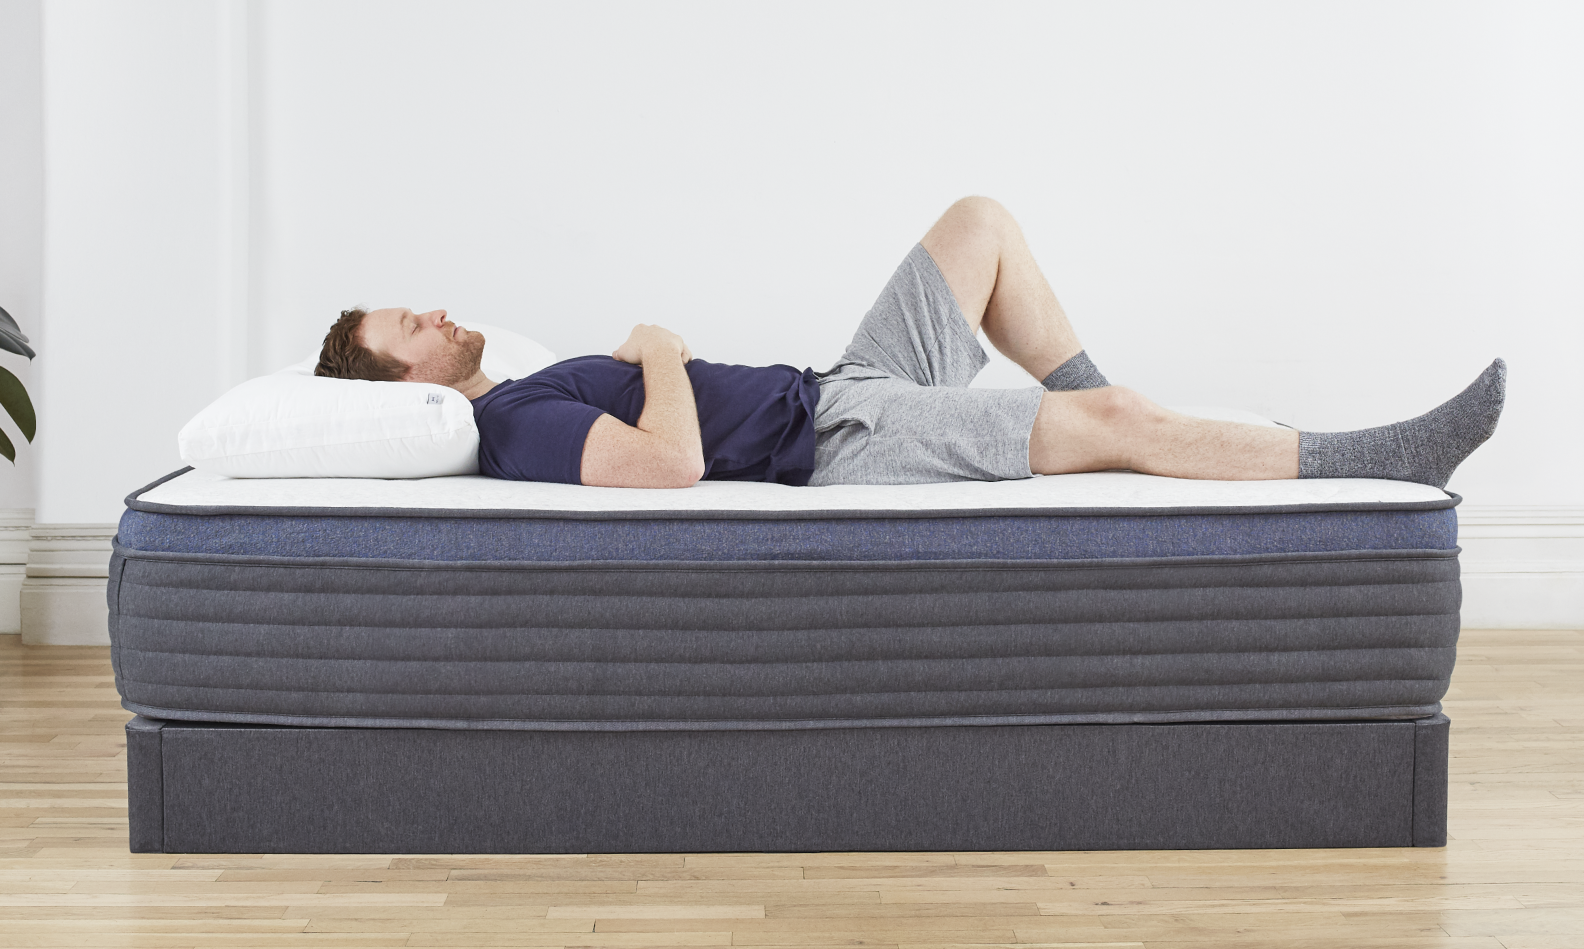 Man laying on his back on Helix Midnight Luxe mattress on Helix Foundation